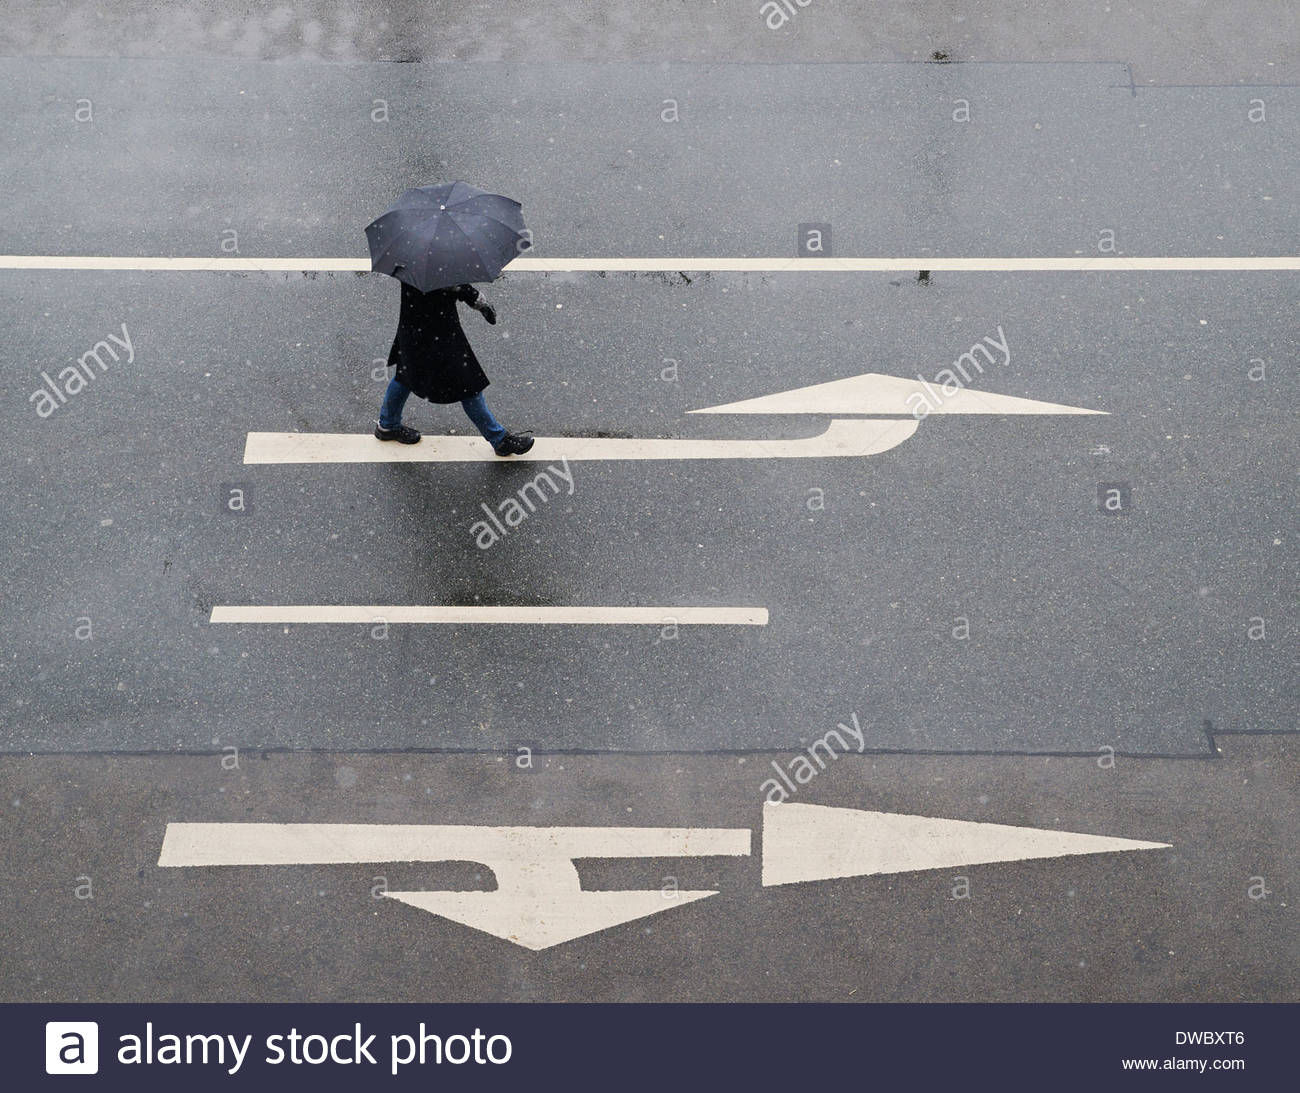 High angle view of woman with umbrella walking on road - Stock Image